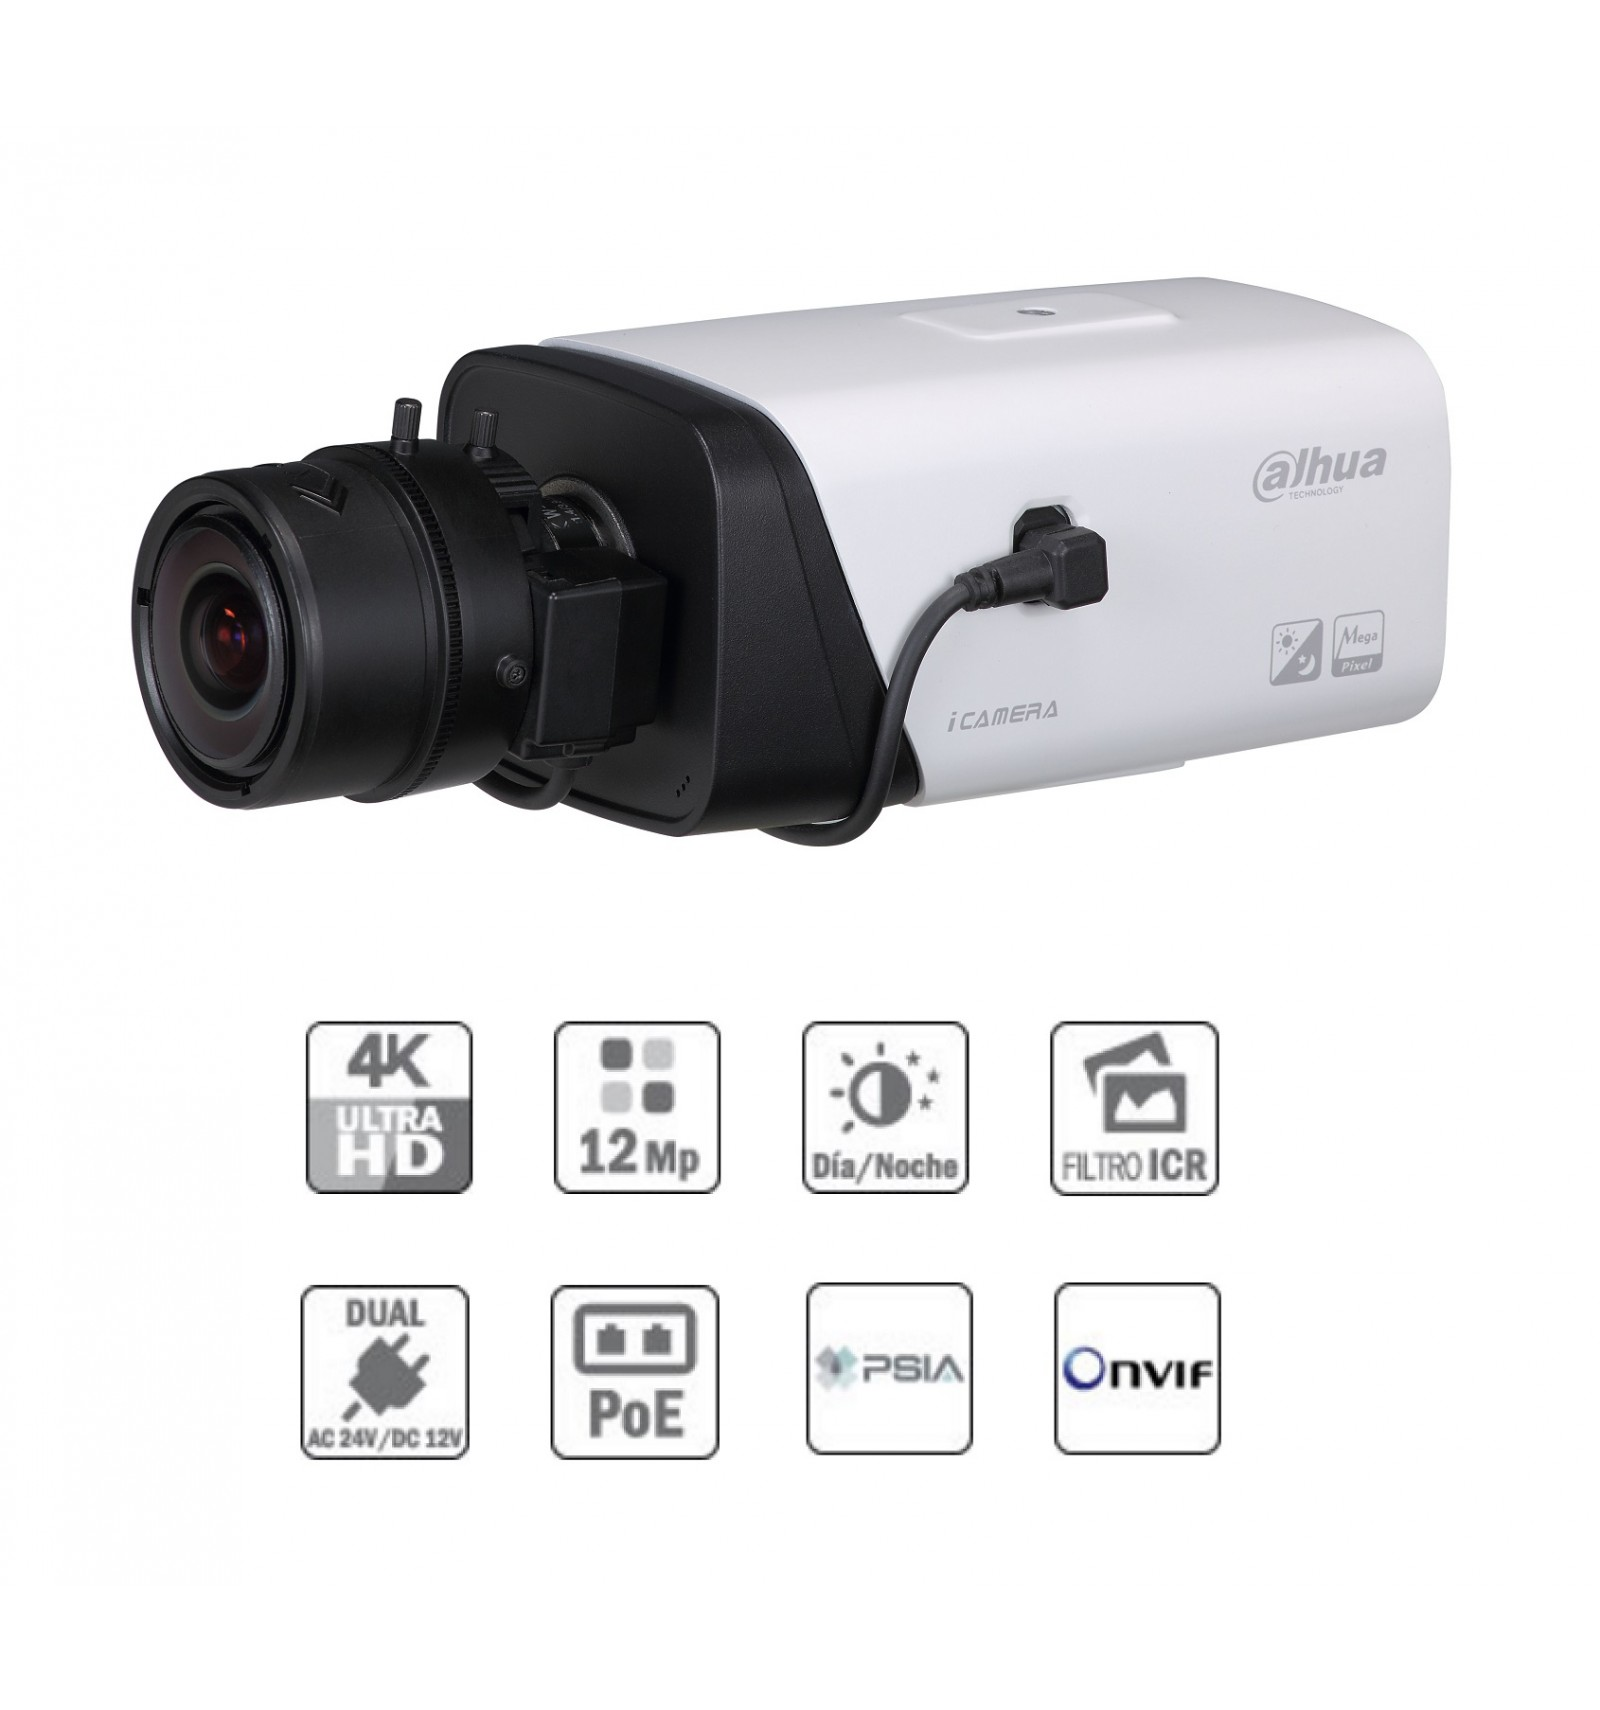 Camara de vigilancia box ip sin op resoluci n hasta 12mp a - Camaras de vigilancia ip ...